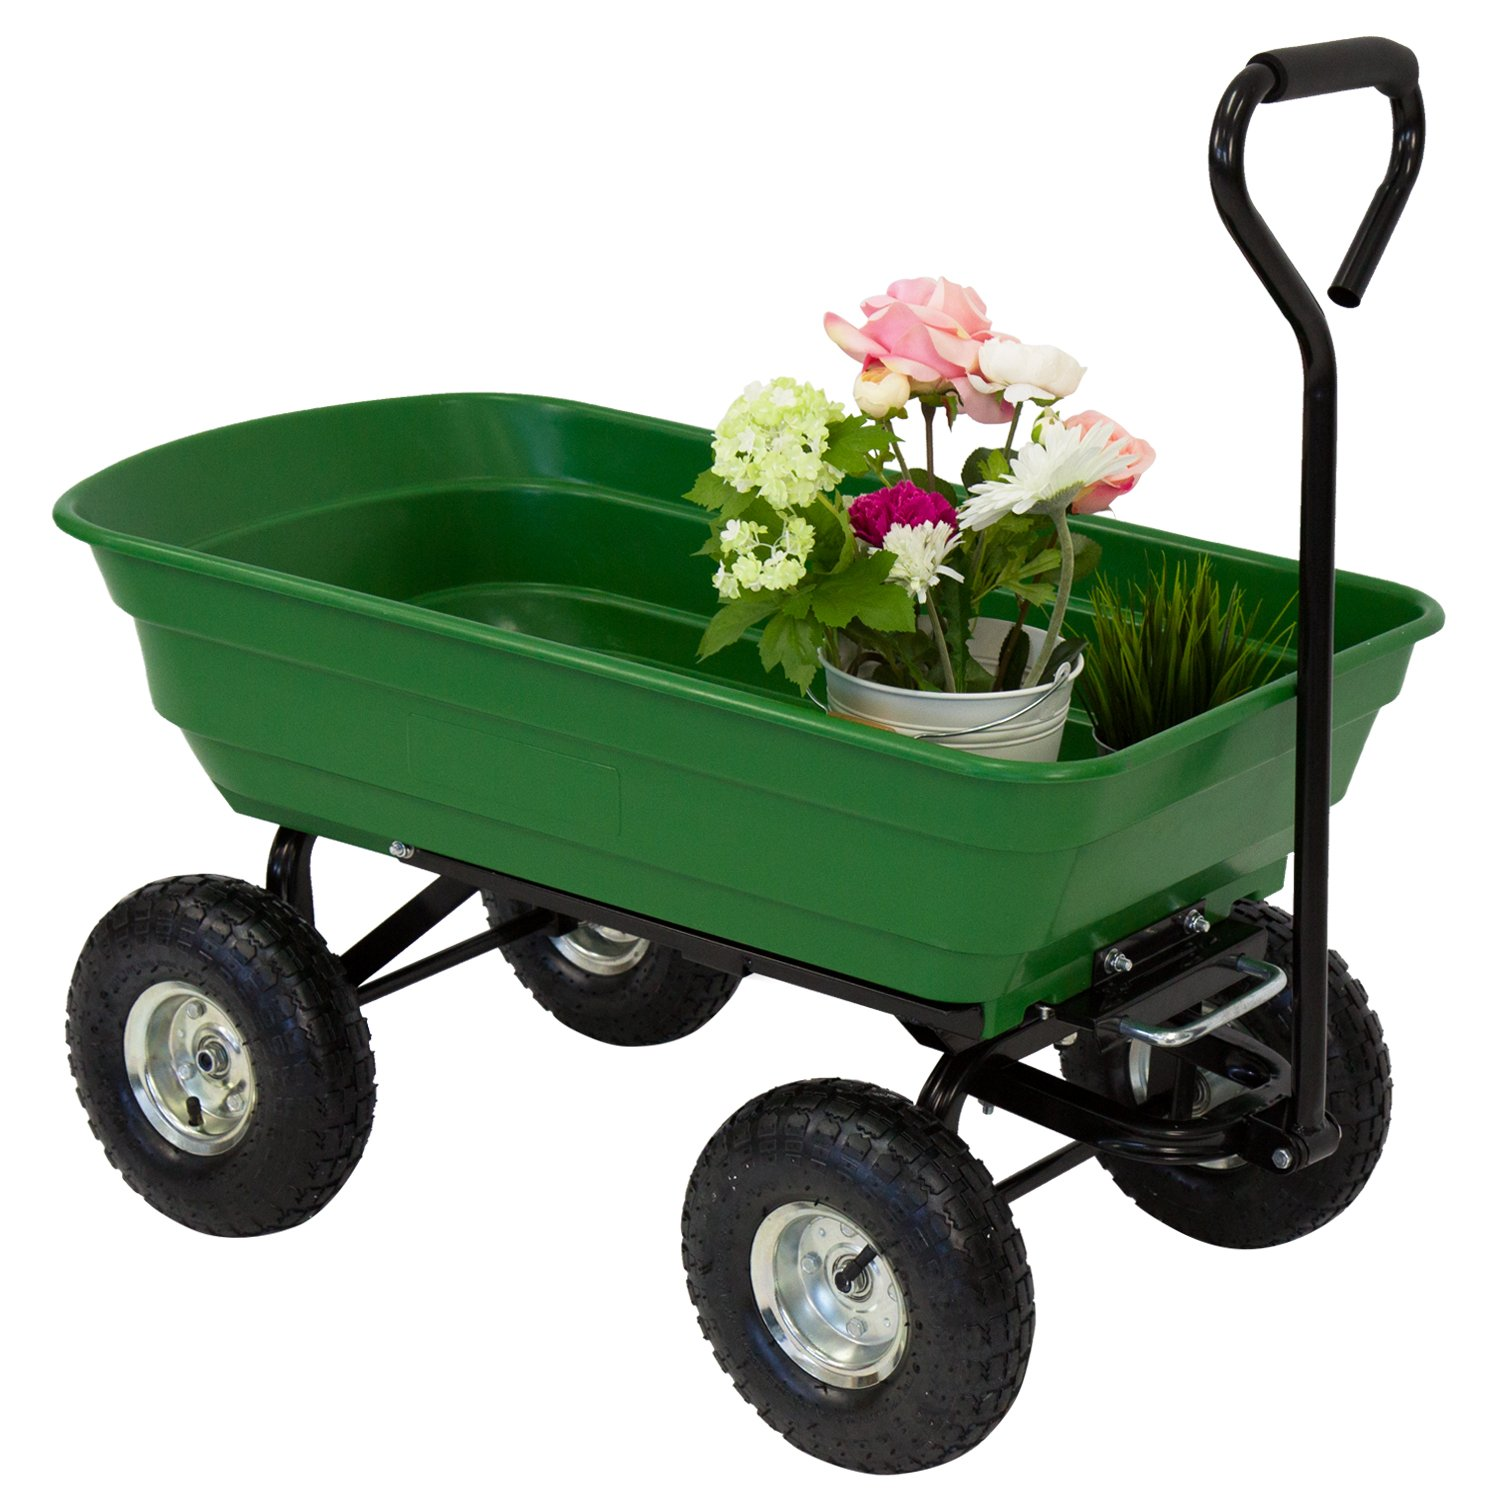 Peach Tree Poly Garden Dump Cart with Steel Frame and 10-in. Pneumatic Tires, 600-Pound Capacity, Green